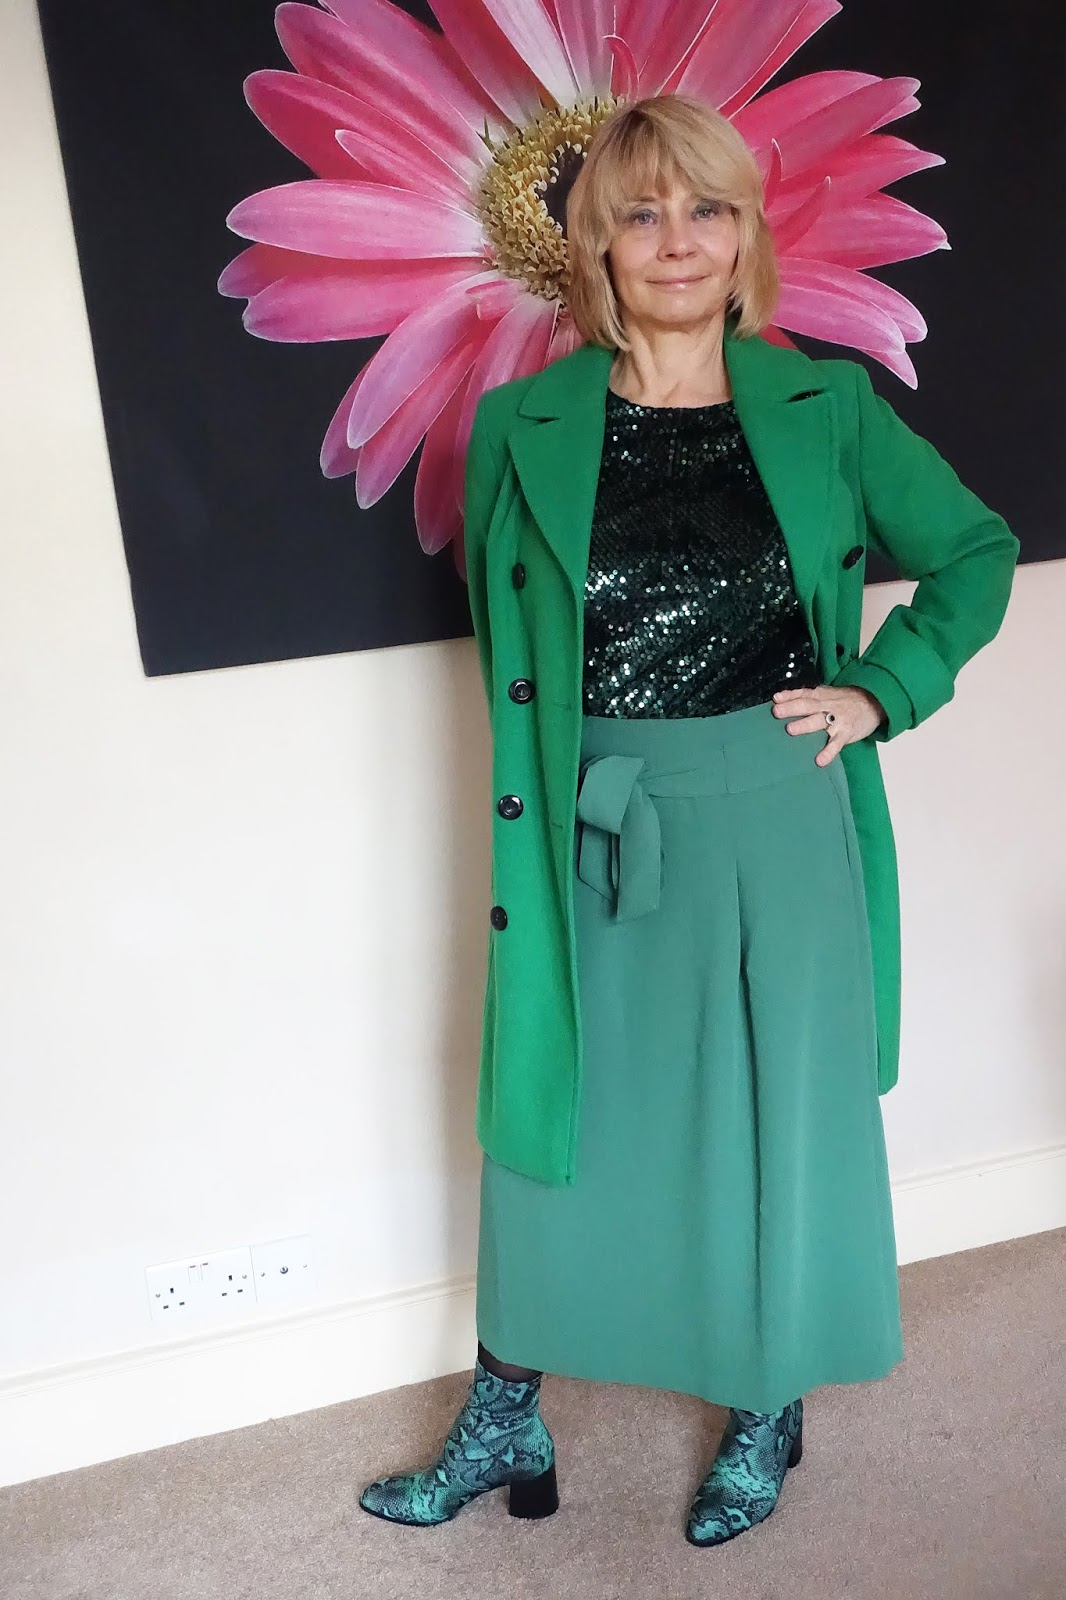 A green coat, green midi skirt, green sequinned top and green snakeskin boots provide tonal contrast in a monchrome outfit worn by over-50s blogger Gail Hanlon from Is This Mutton?